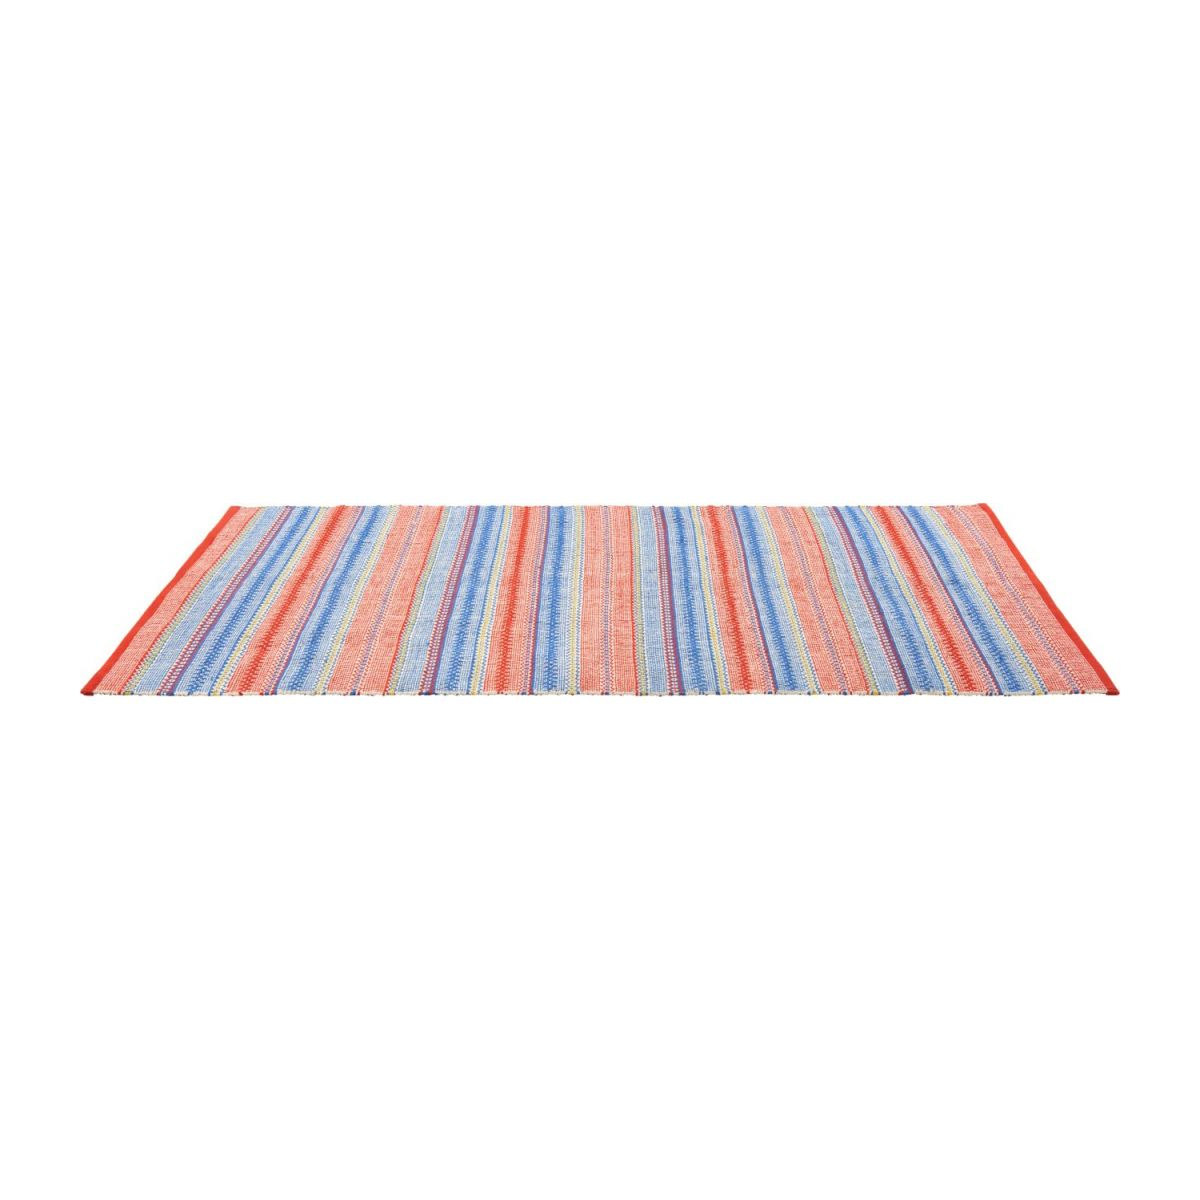 Flat-woven carpet  120x180, red and blue n°2